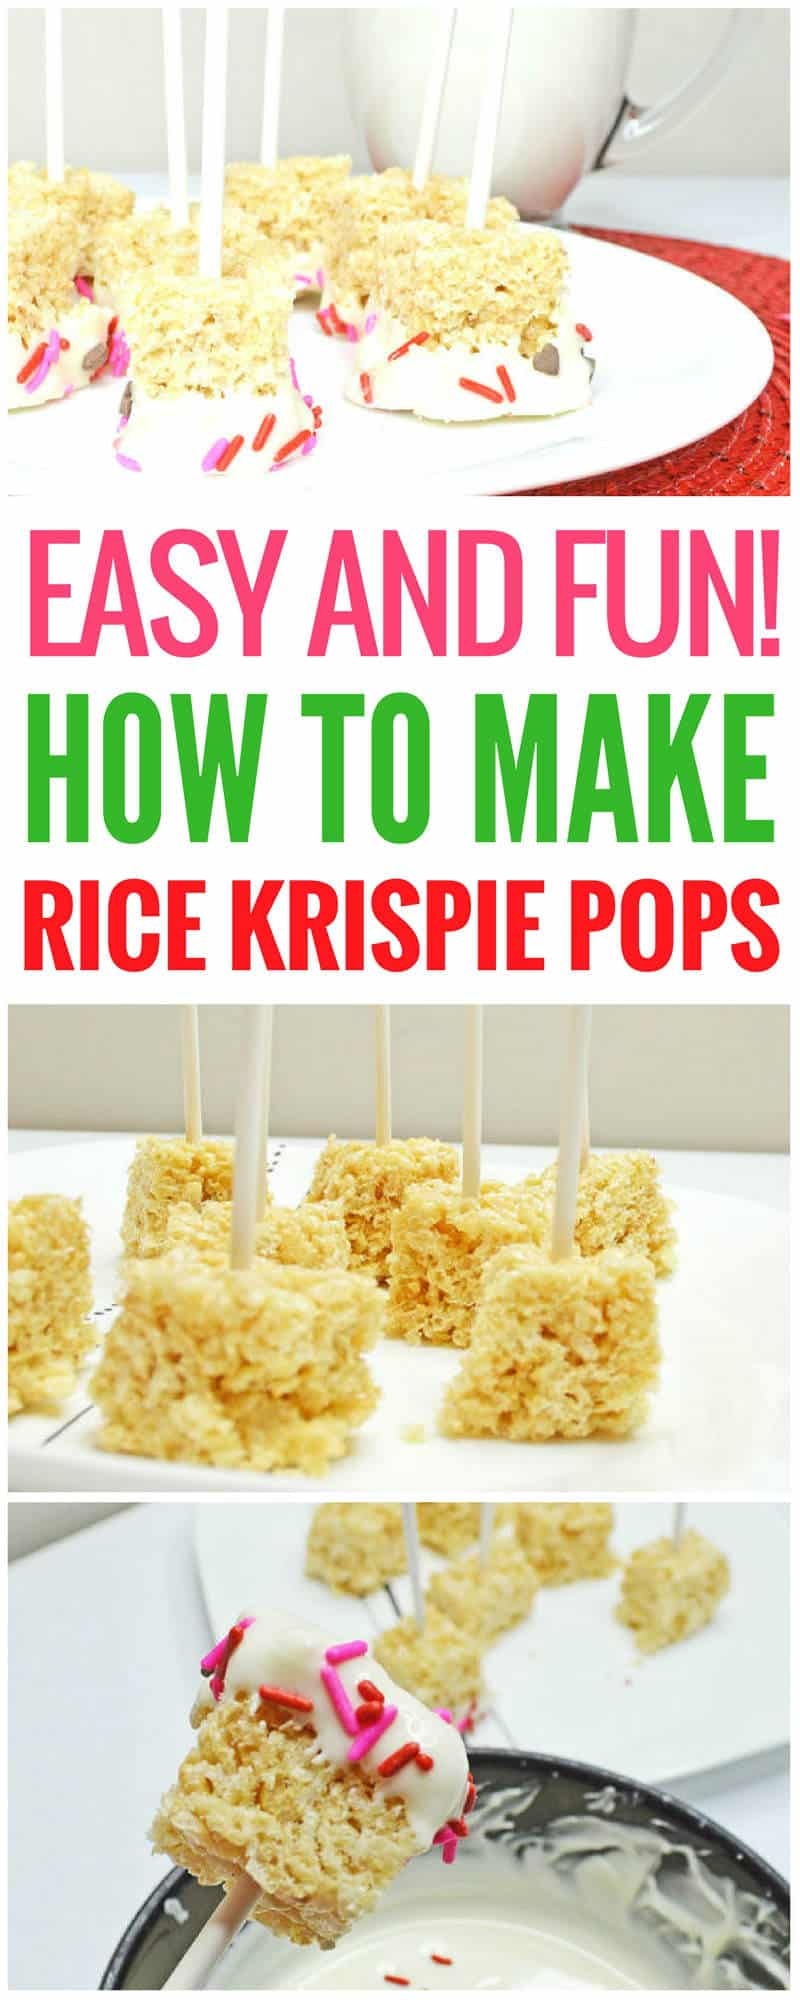 How to make Rice Krispie pops. This Rice Krispie pops recipe is the easy, fun one you've been looking for. You can make these Rice Krispie treats in no time, even with the kids helping. These would be great for a birthday, or really anytime you're craving something so good and sweet! Rice Krispie treats | Rice Krispie pops | Rice Krispie pops birthday | white chocolate dipped Rice Krispie pops | pink Rice Krispie pops | Rice Krispie pops with sprinkles | Rice Krispie pops with sprinkles and marshmallows #dessert #sweet #dessertrecipes #ricekrispiestreats #ricekrispies #dessert #sweet #dessertrecipes